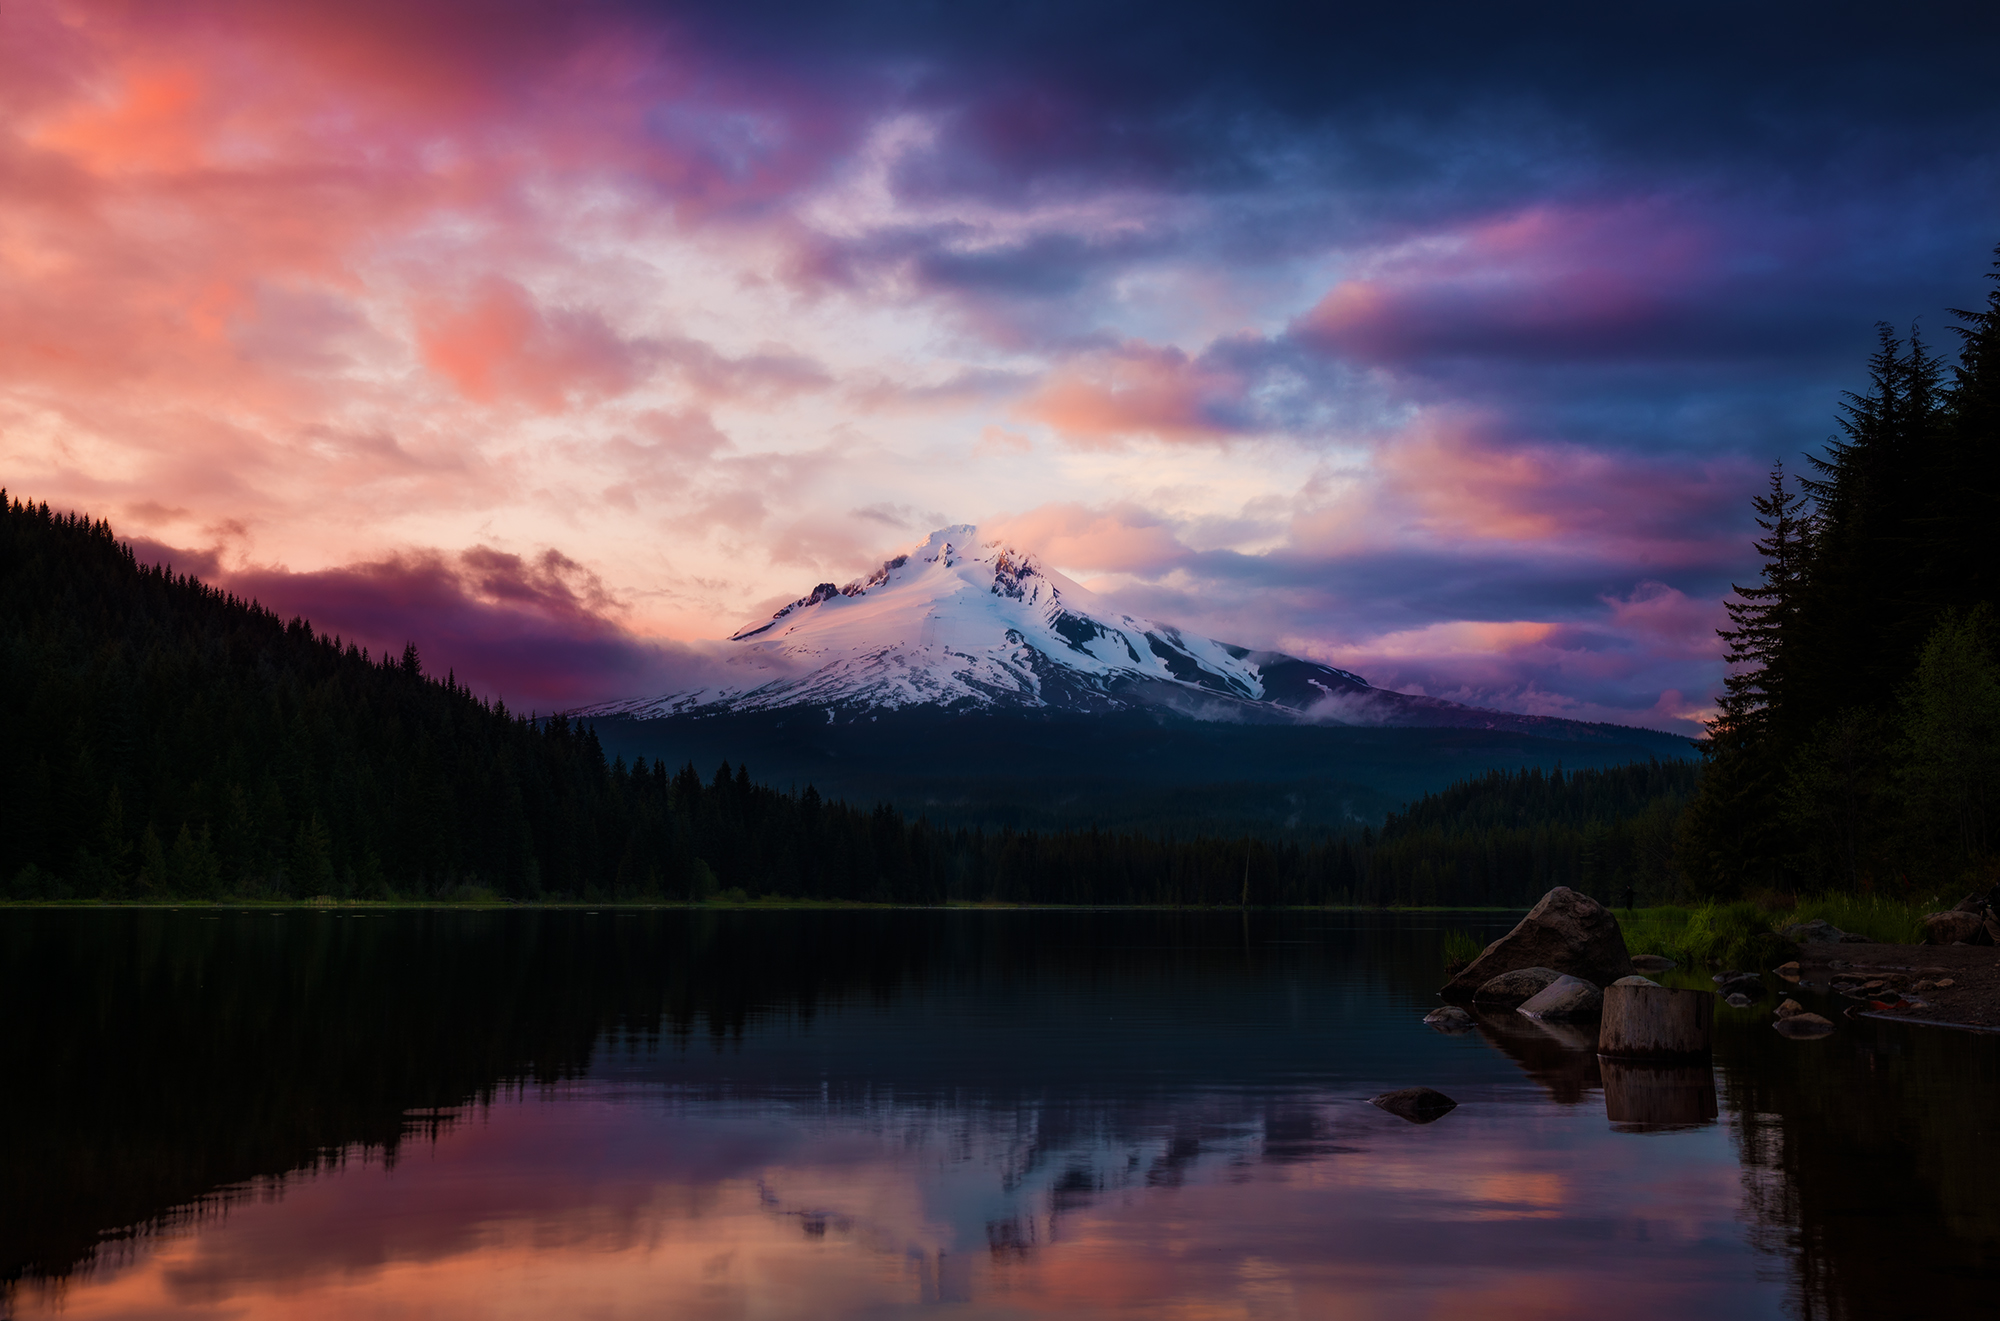 Hd Good Afternoon Wallpaper Journey 2 The Mysterious Mountain Travel Caffeine